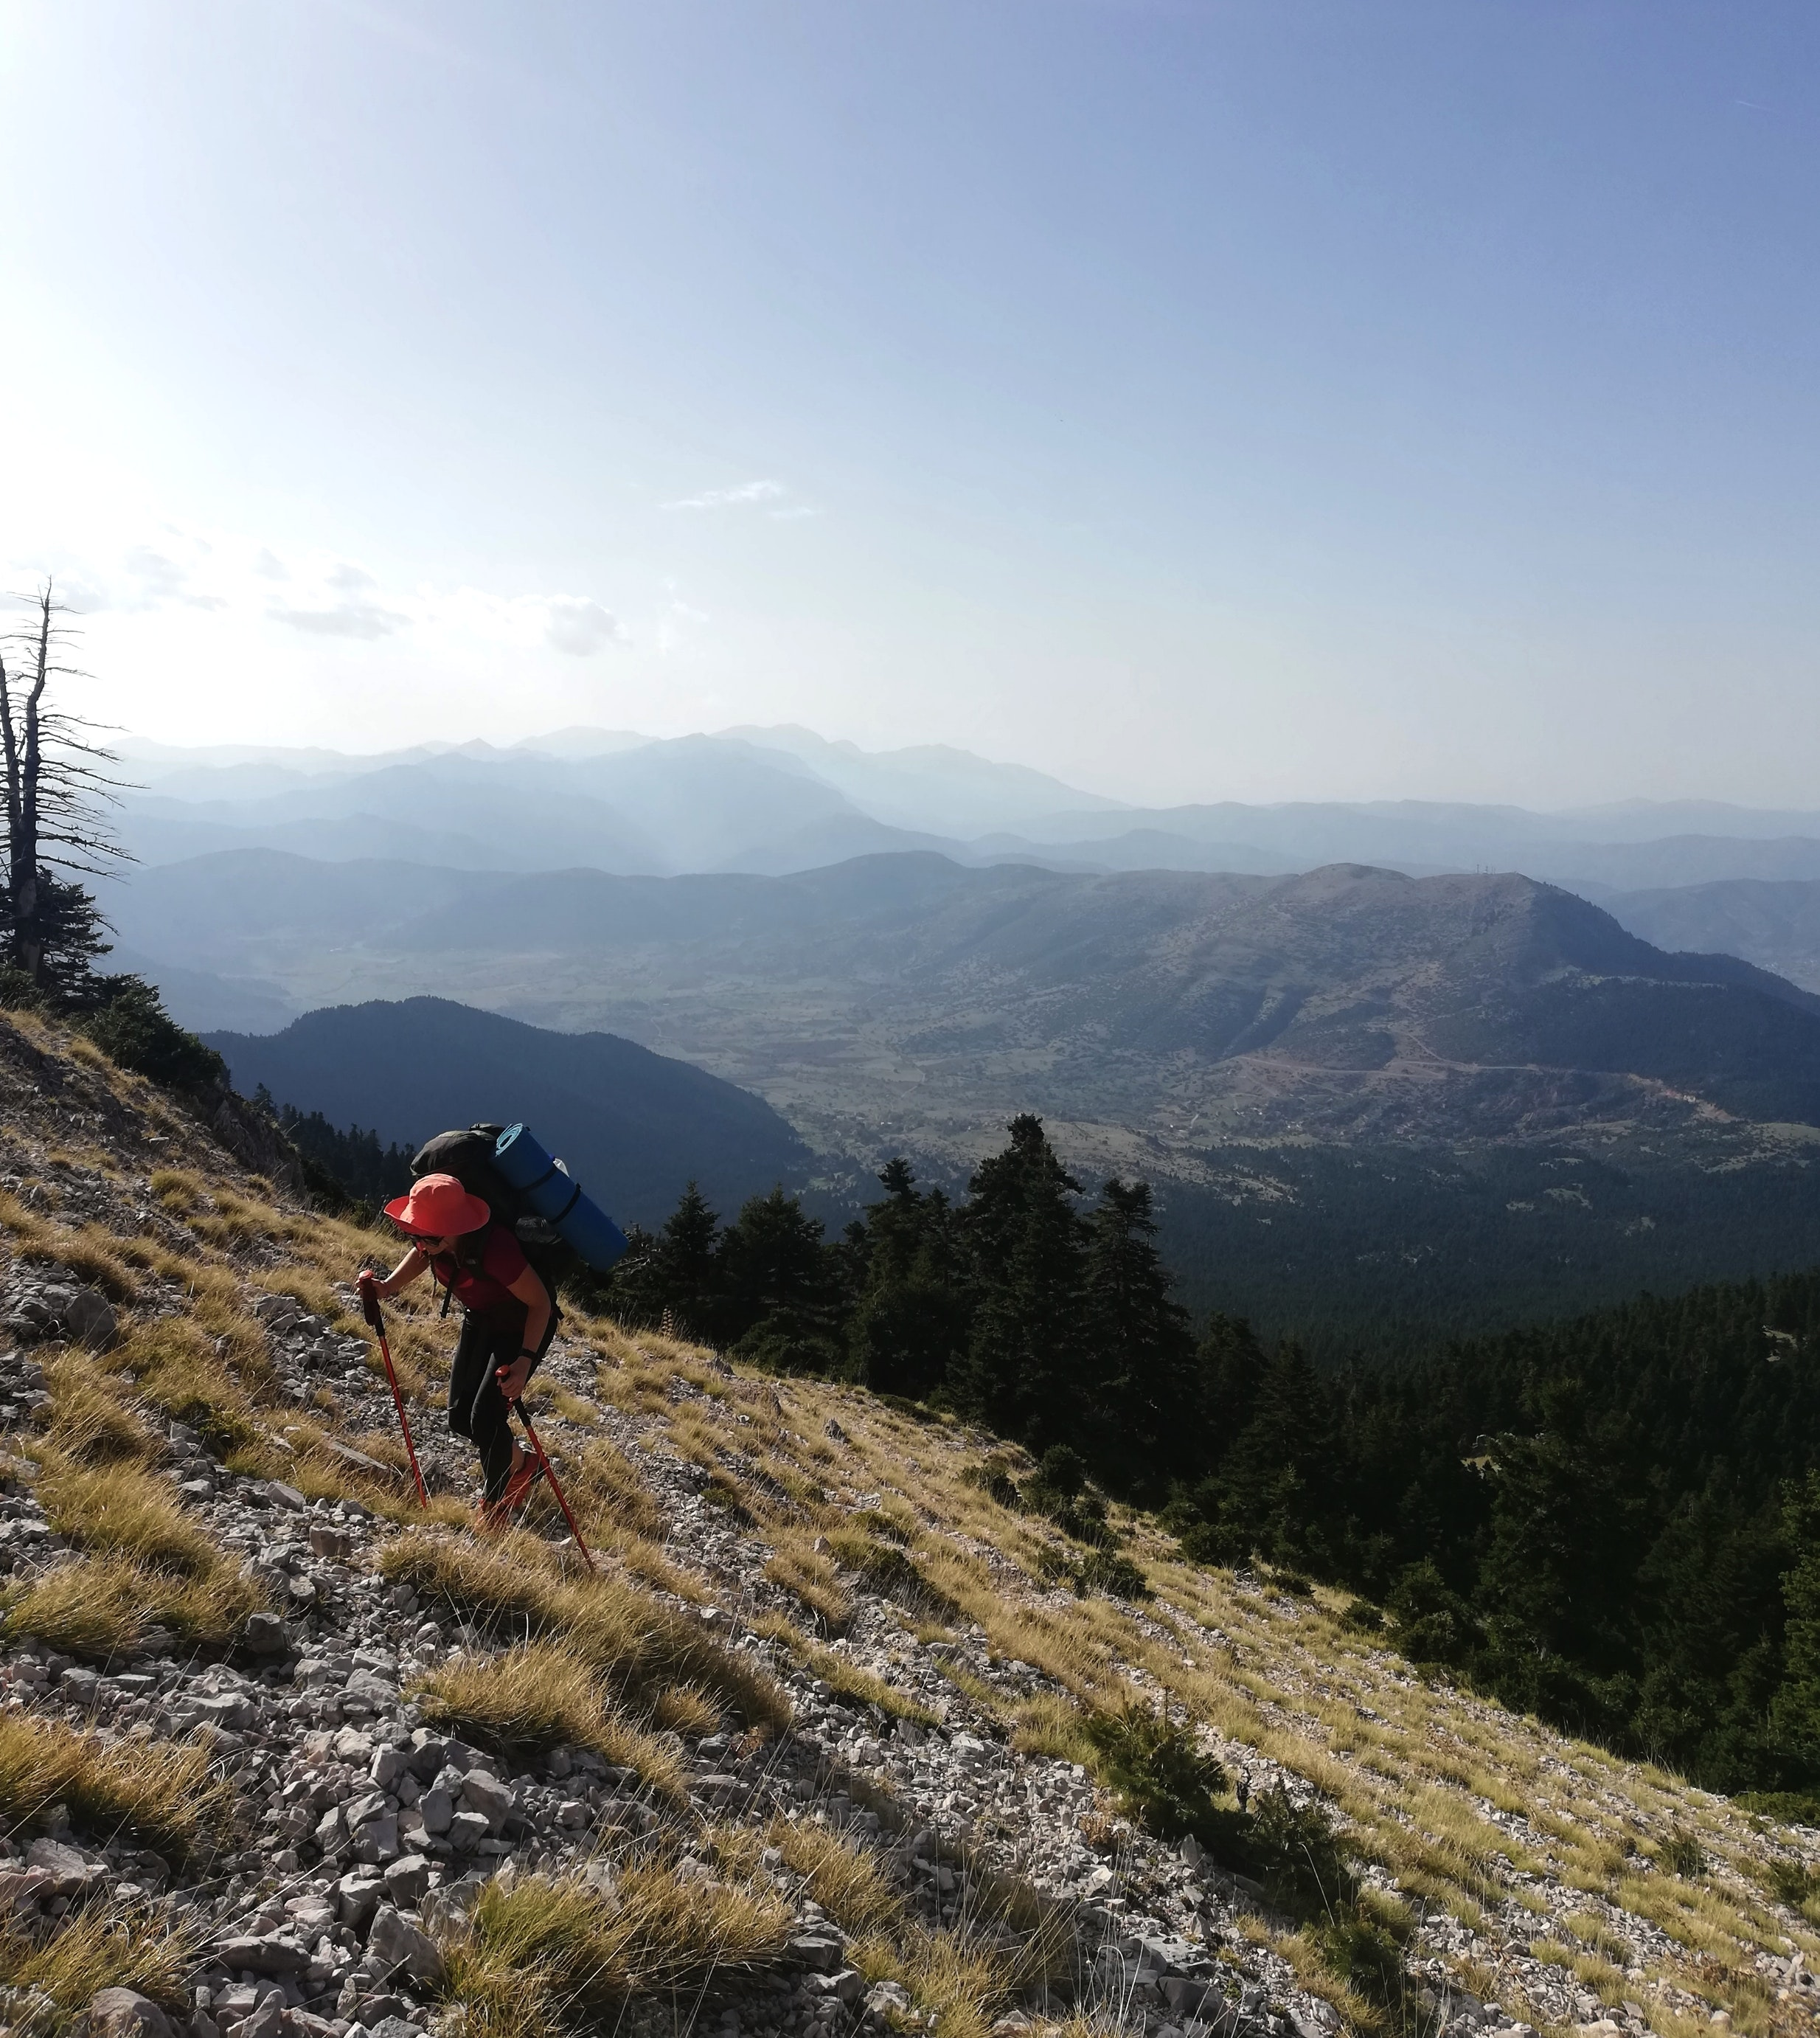 Experience life as a thrilling adventure with Aconcagua hiking